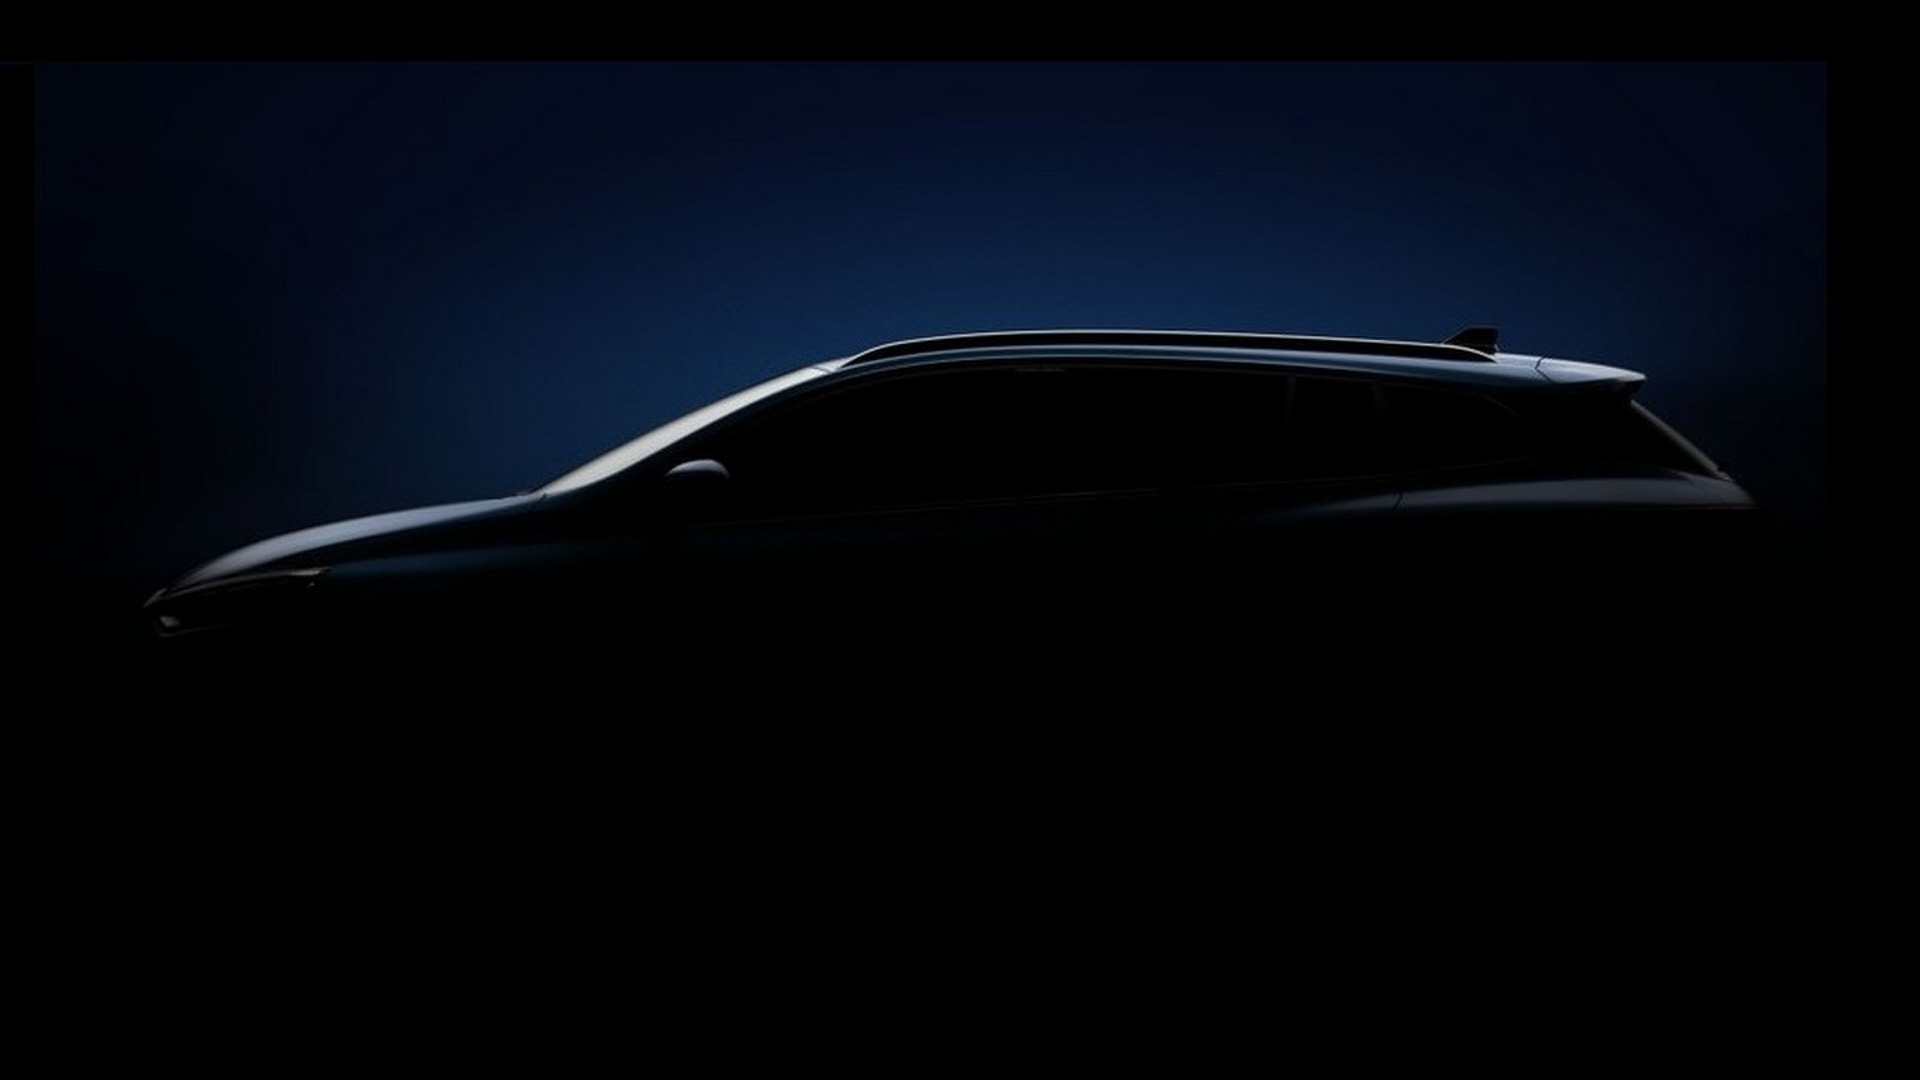 Renault Megane Sport Tourer teased prior to February 22 reveal